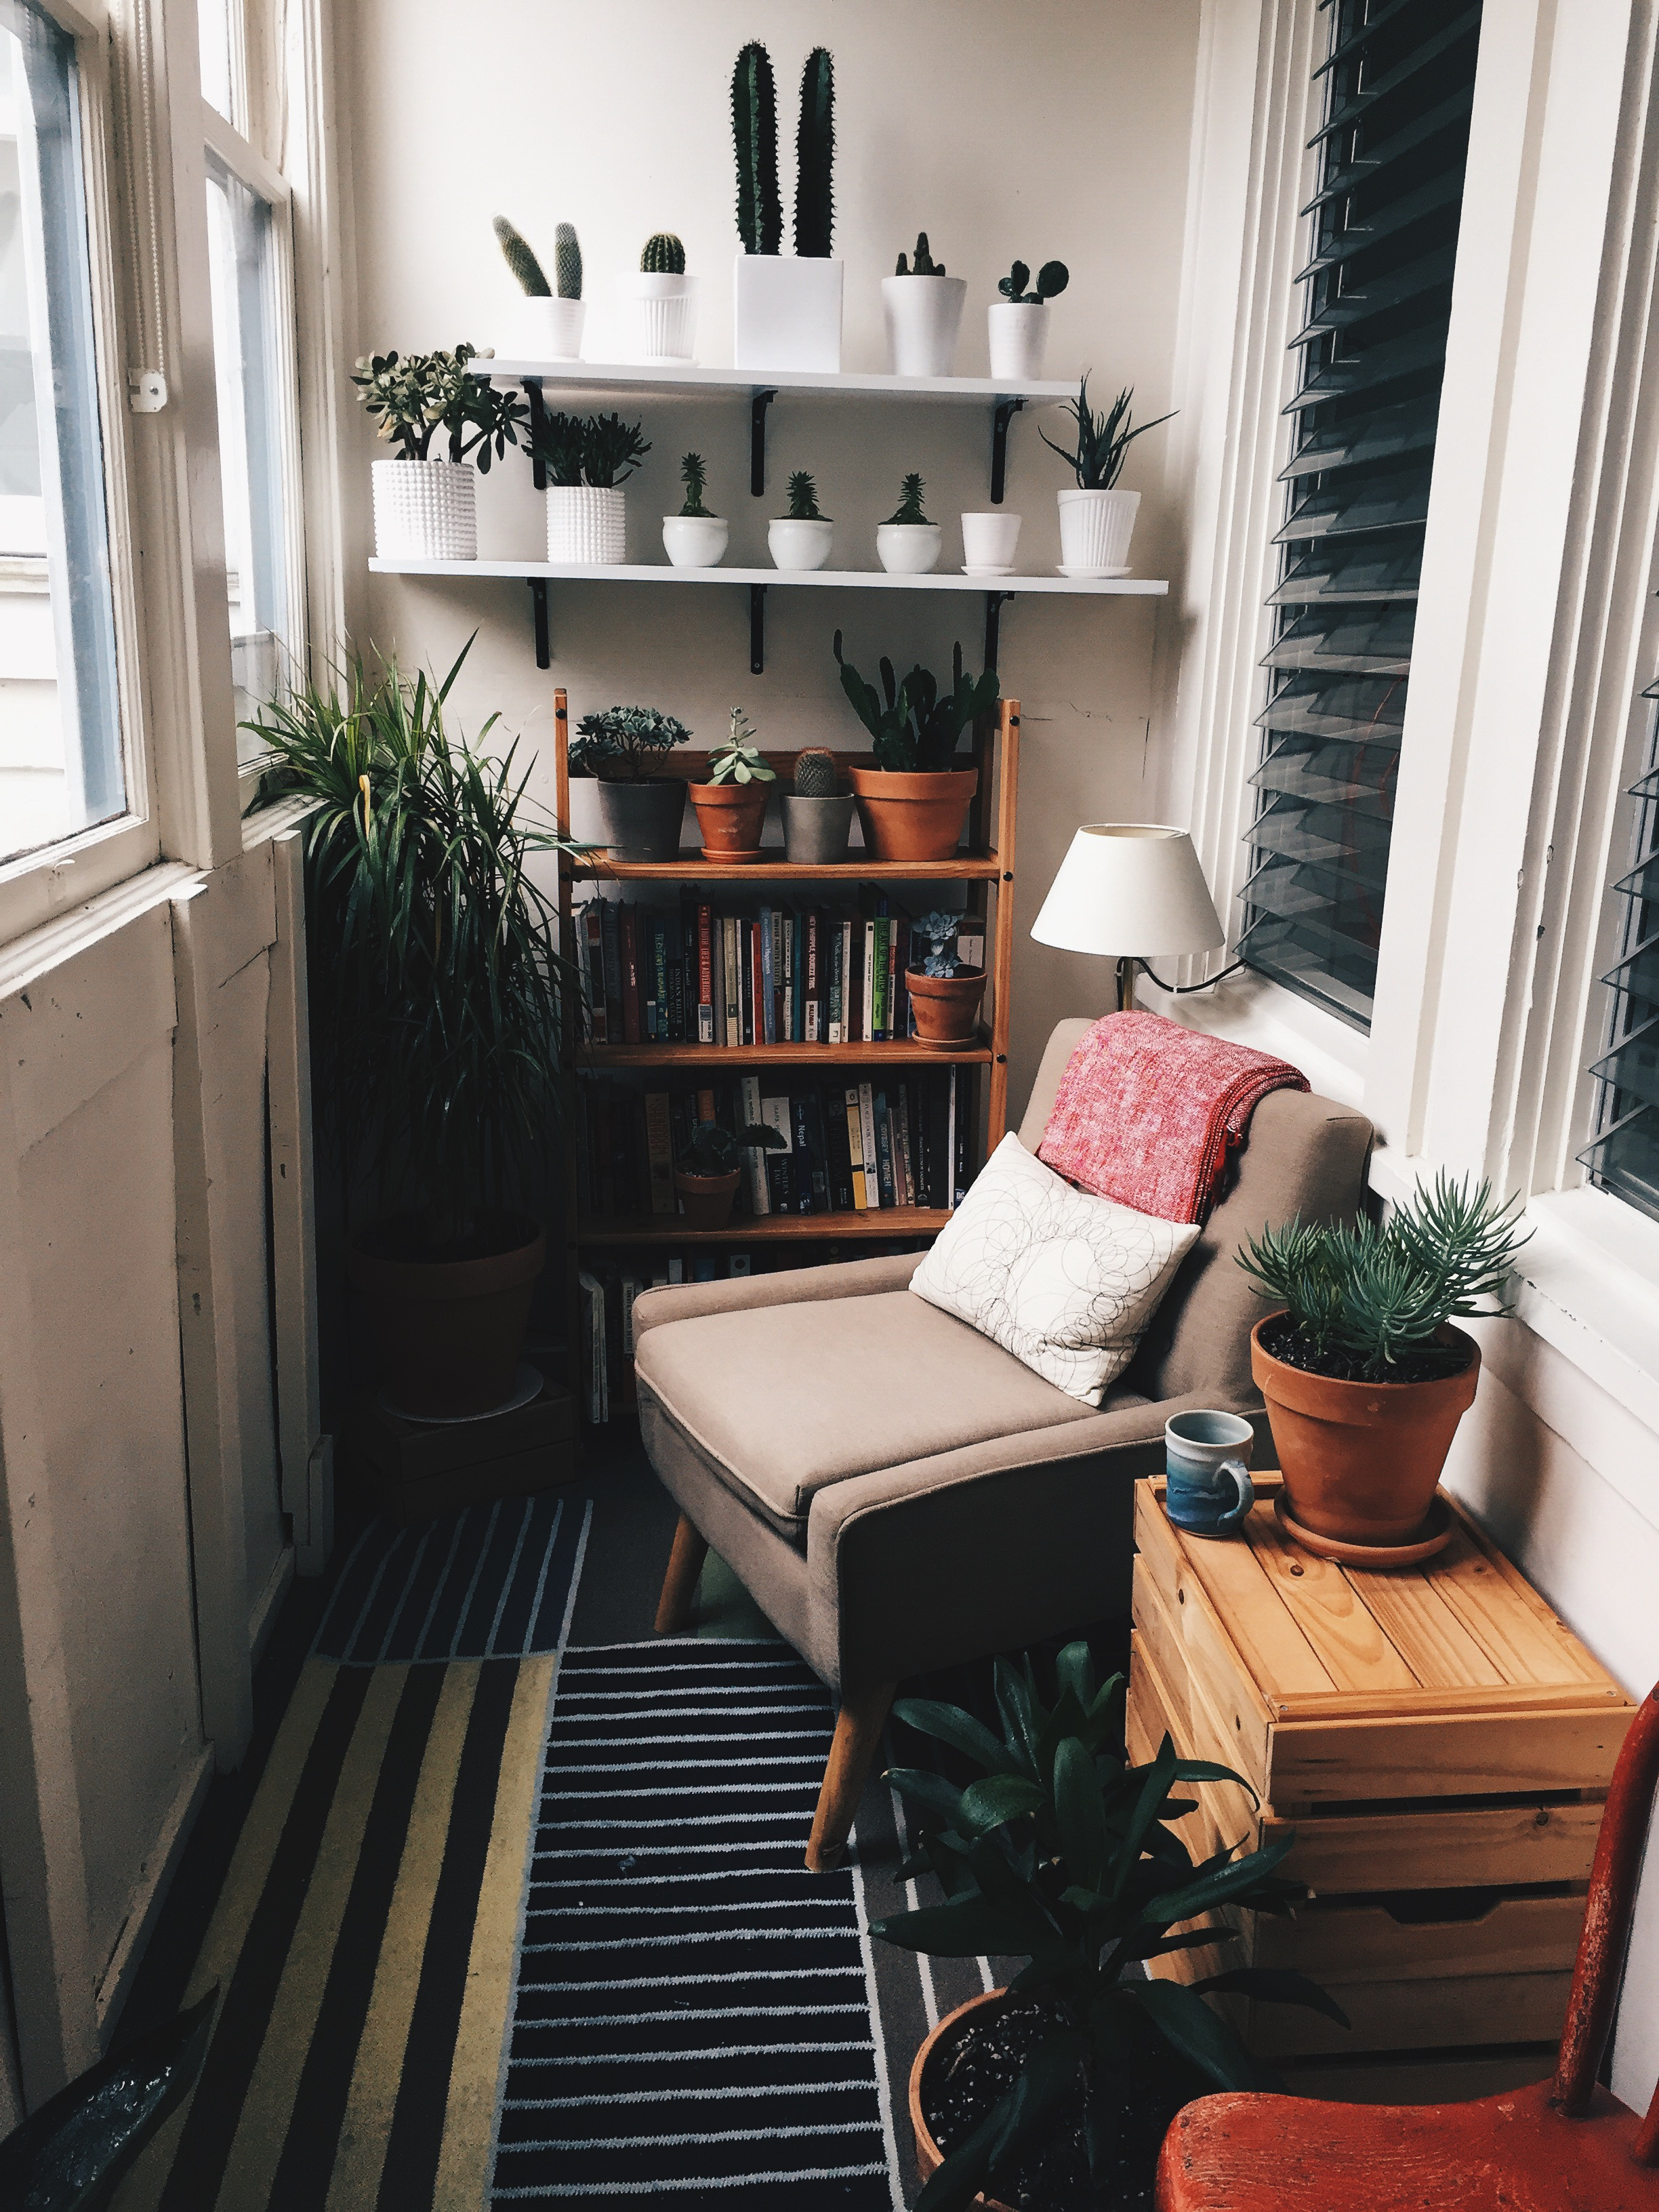 Attached to the kitchen is the cutest little sunroom. This is where I can usually find Harper reading a book. It is also home to our little plant family.